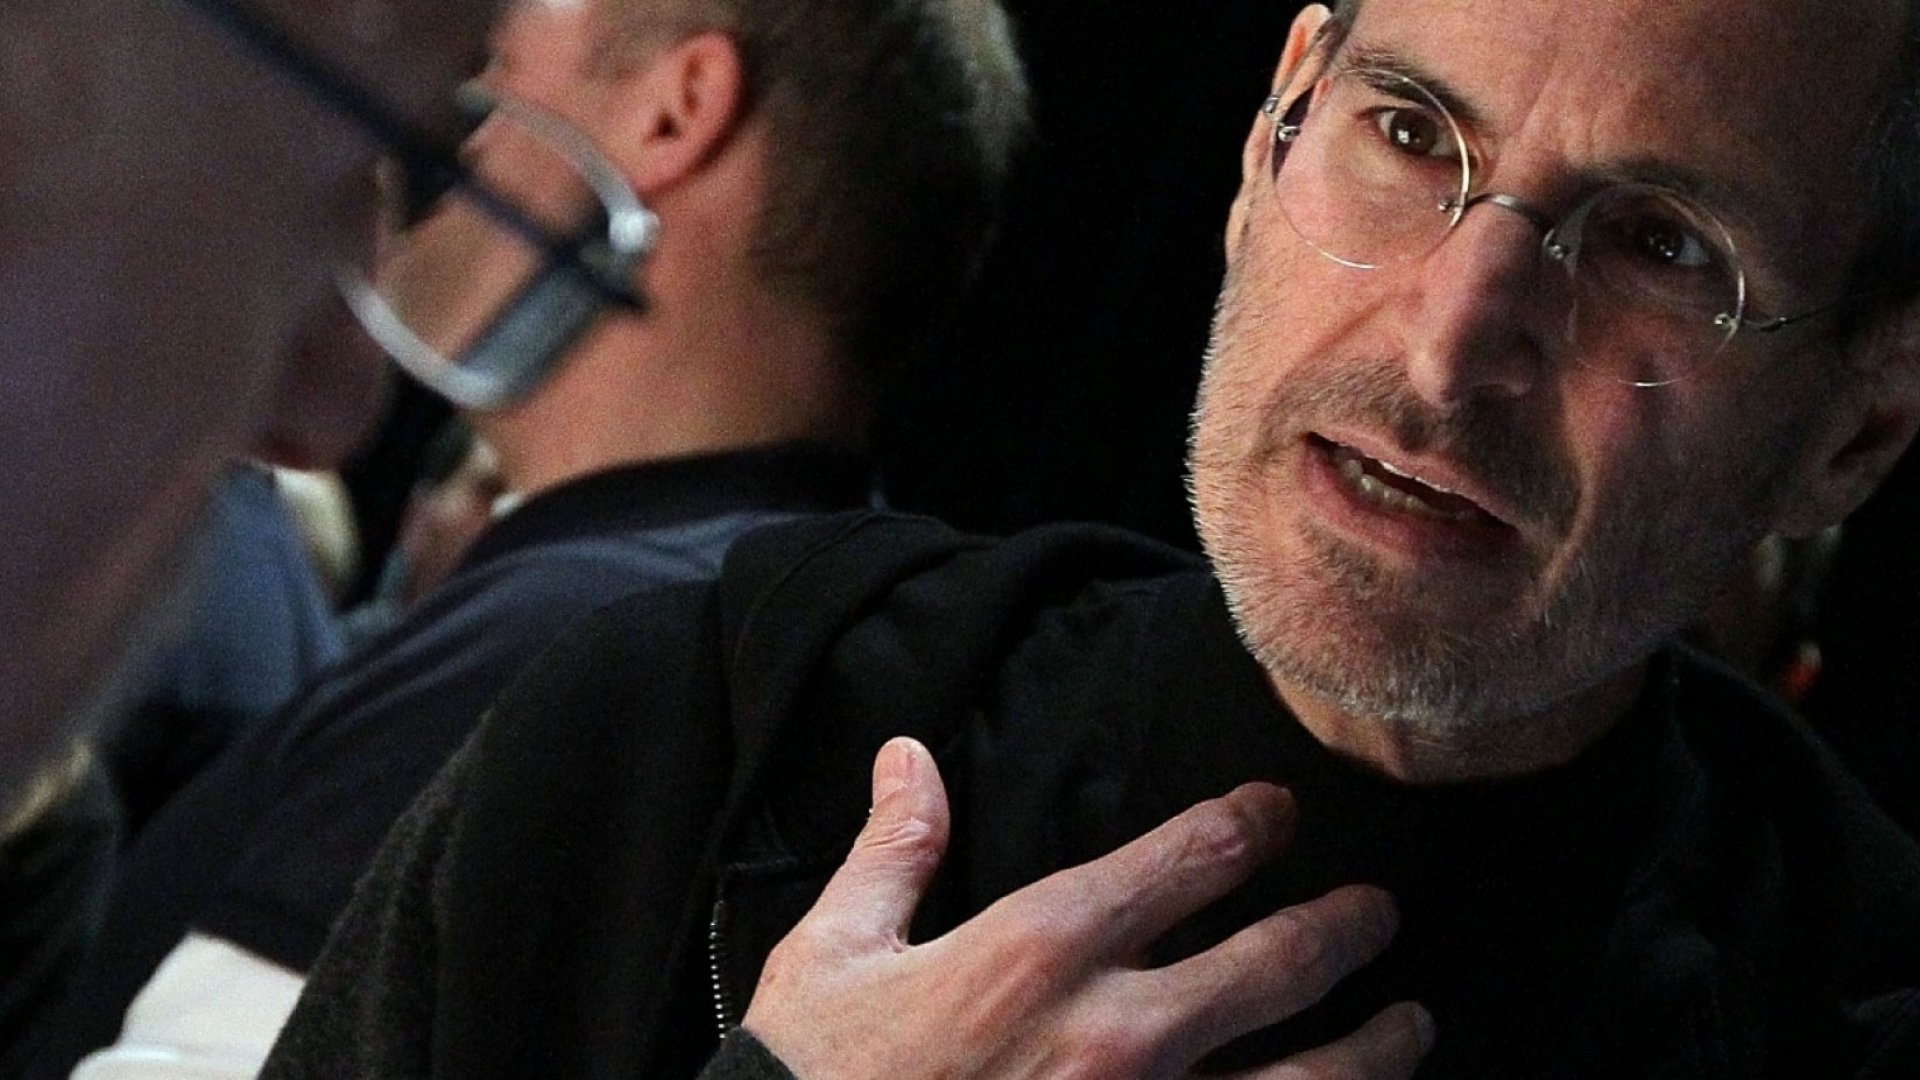 Want to Be Like Steve Jobs and Put a Dent in the Universe? Kick Your Ego Out First. Here's How